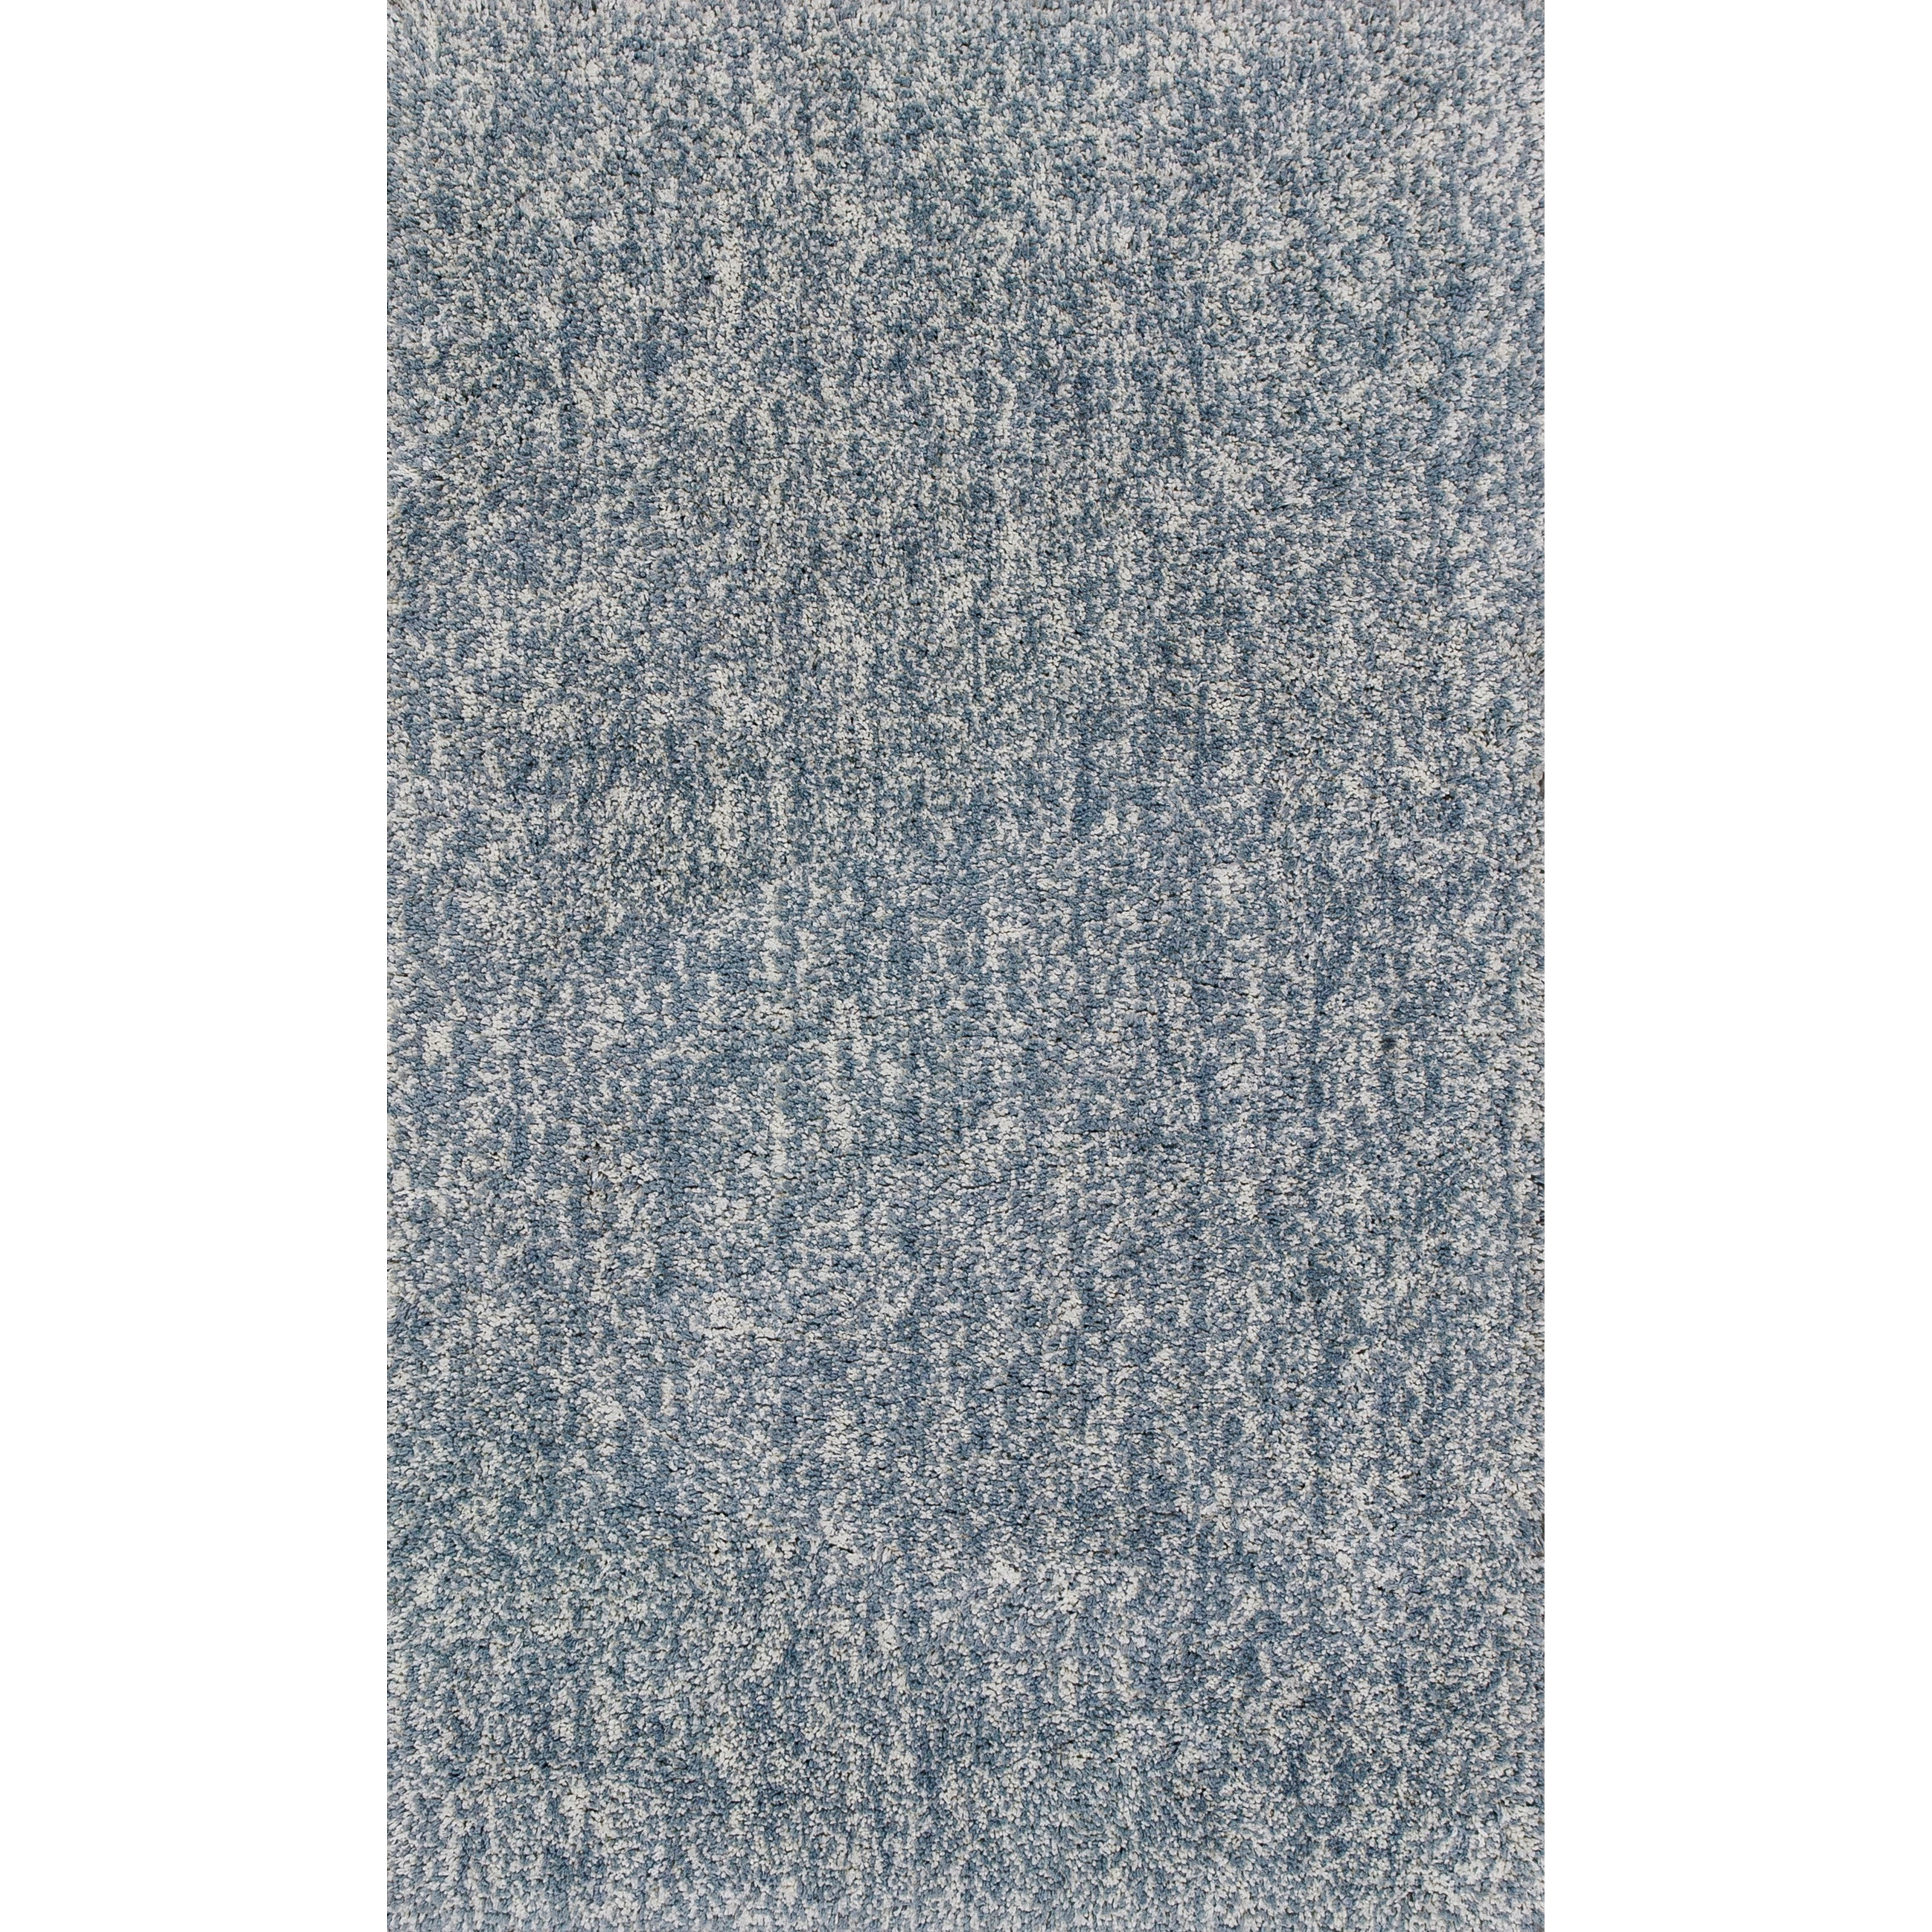 Bliss 5' X 7' Slate Heather Shag Area Rug by Kas at Zak's Home